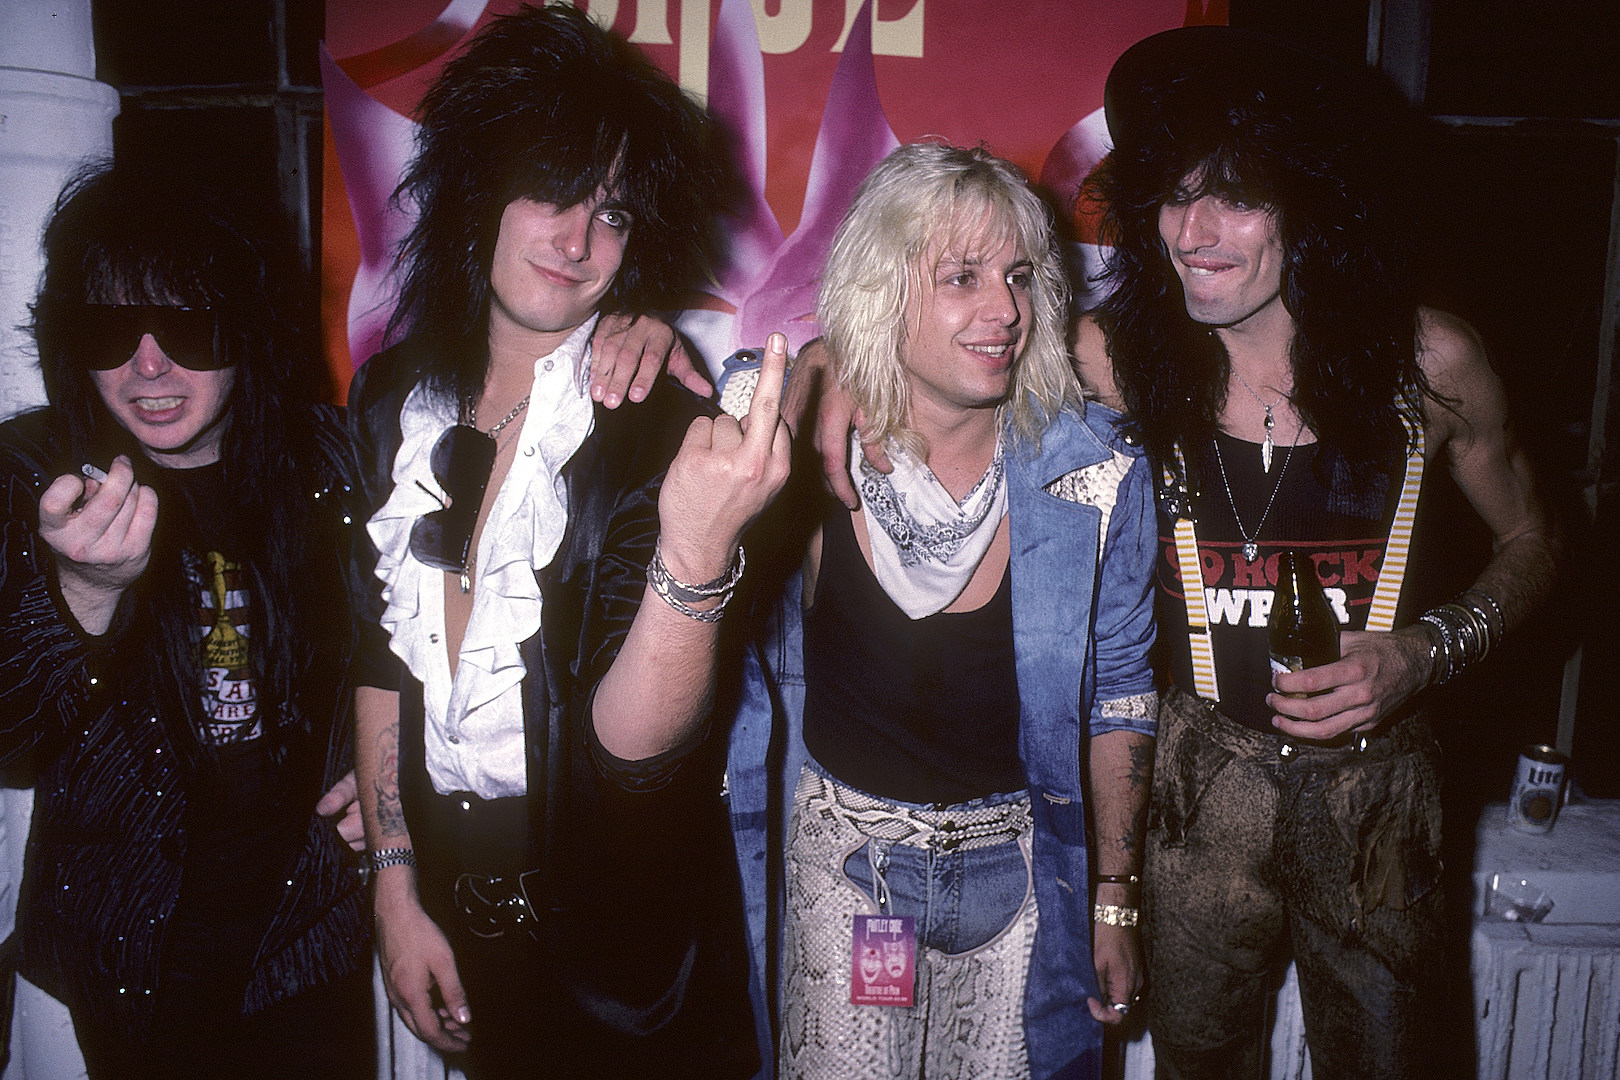 The Dirt: Could Motley Crue Have Made it Today?